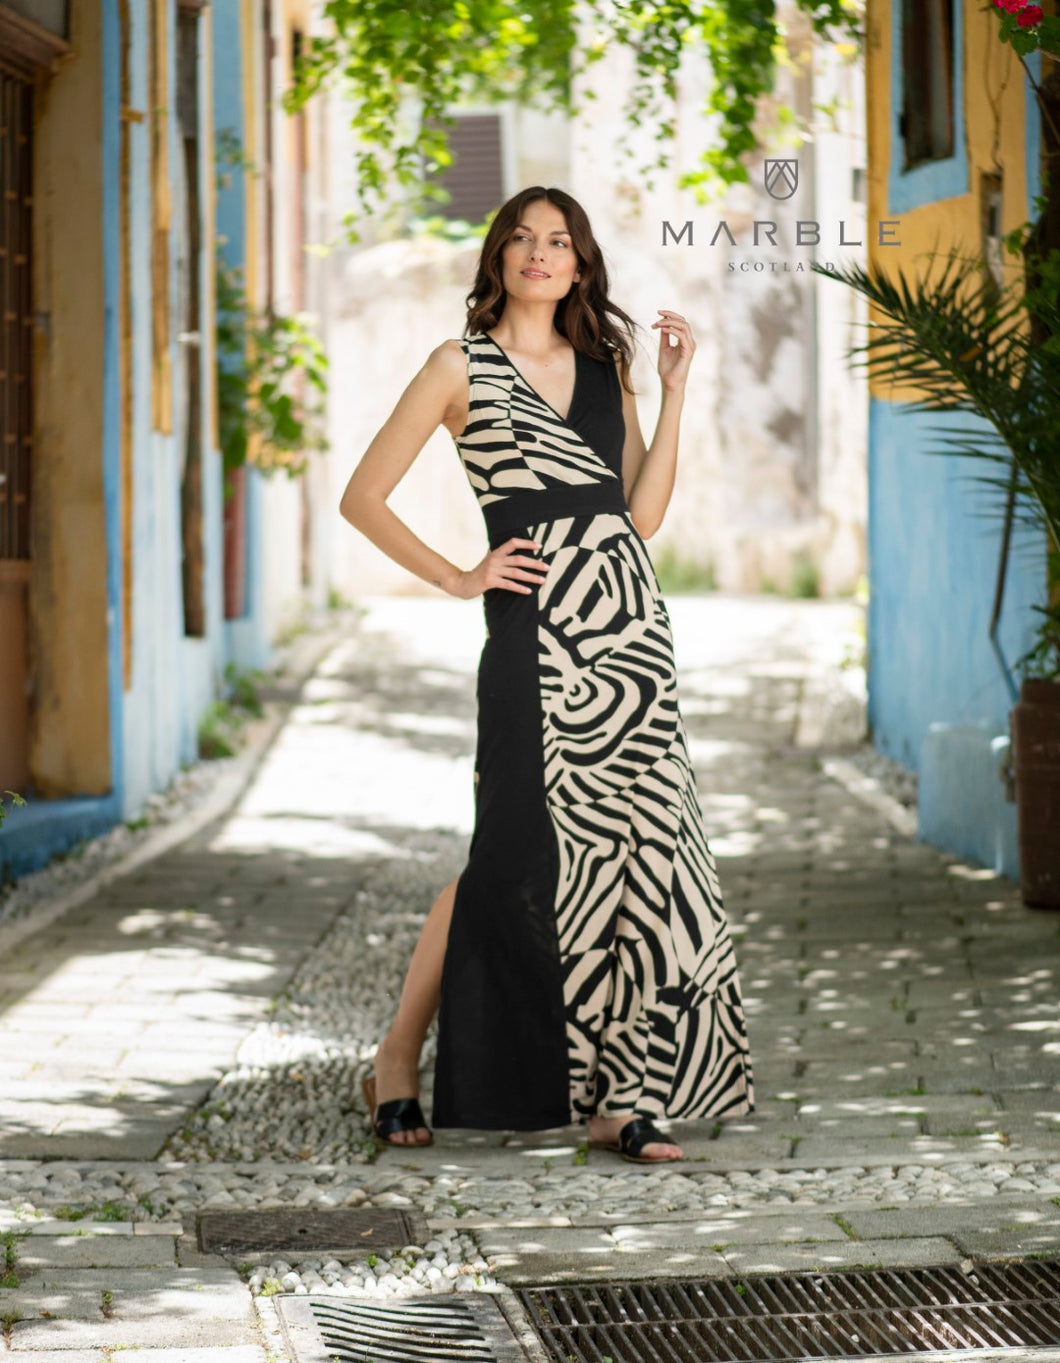 Marble maxi dress in black/beige